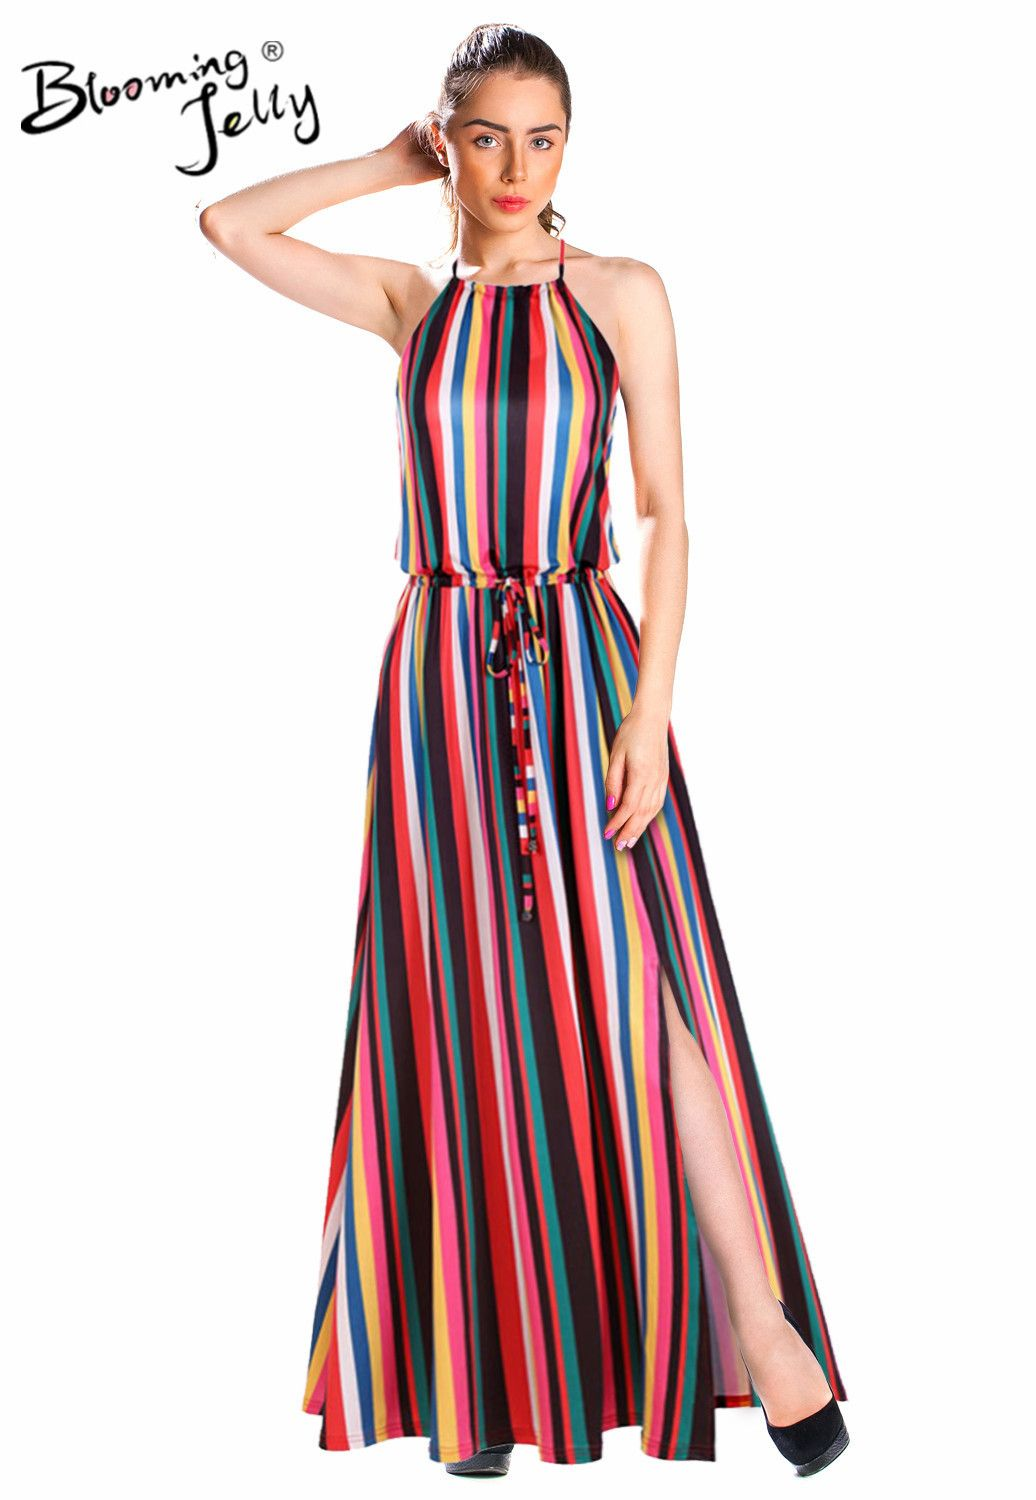 Rainbow Vertical Stripes Print Hater Maxi Dress Bohemian Summer Bohemian Maxi Dress Summer Dress Outfits Dresses [ 1500 x 1036 Pixel ]